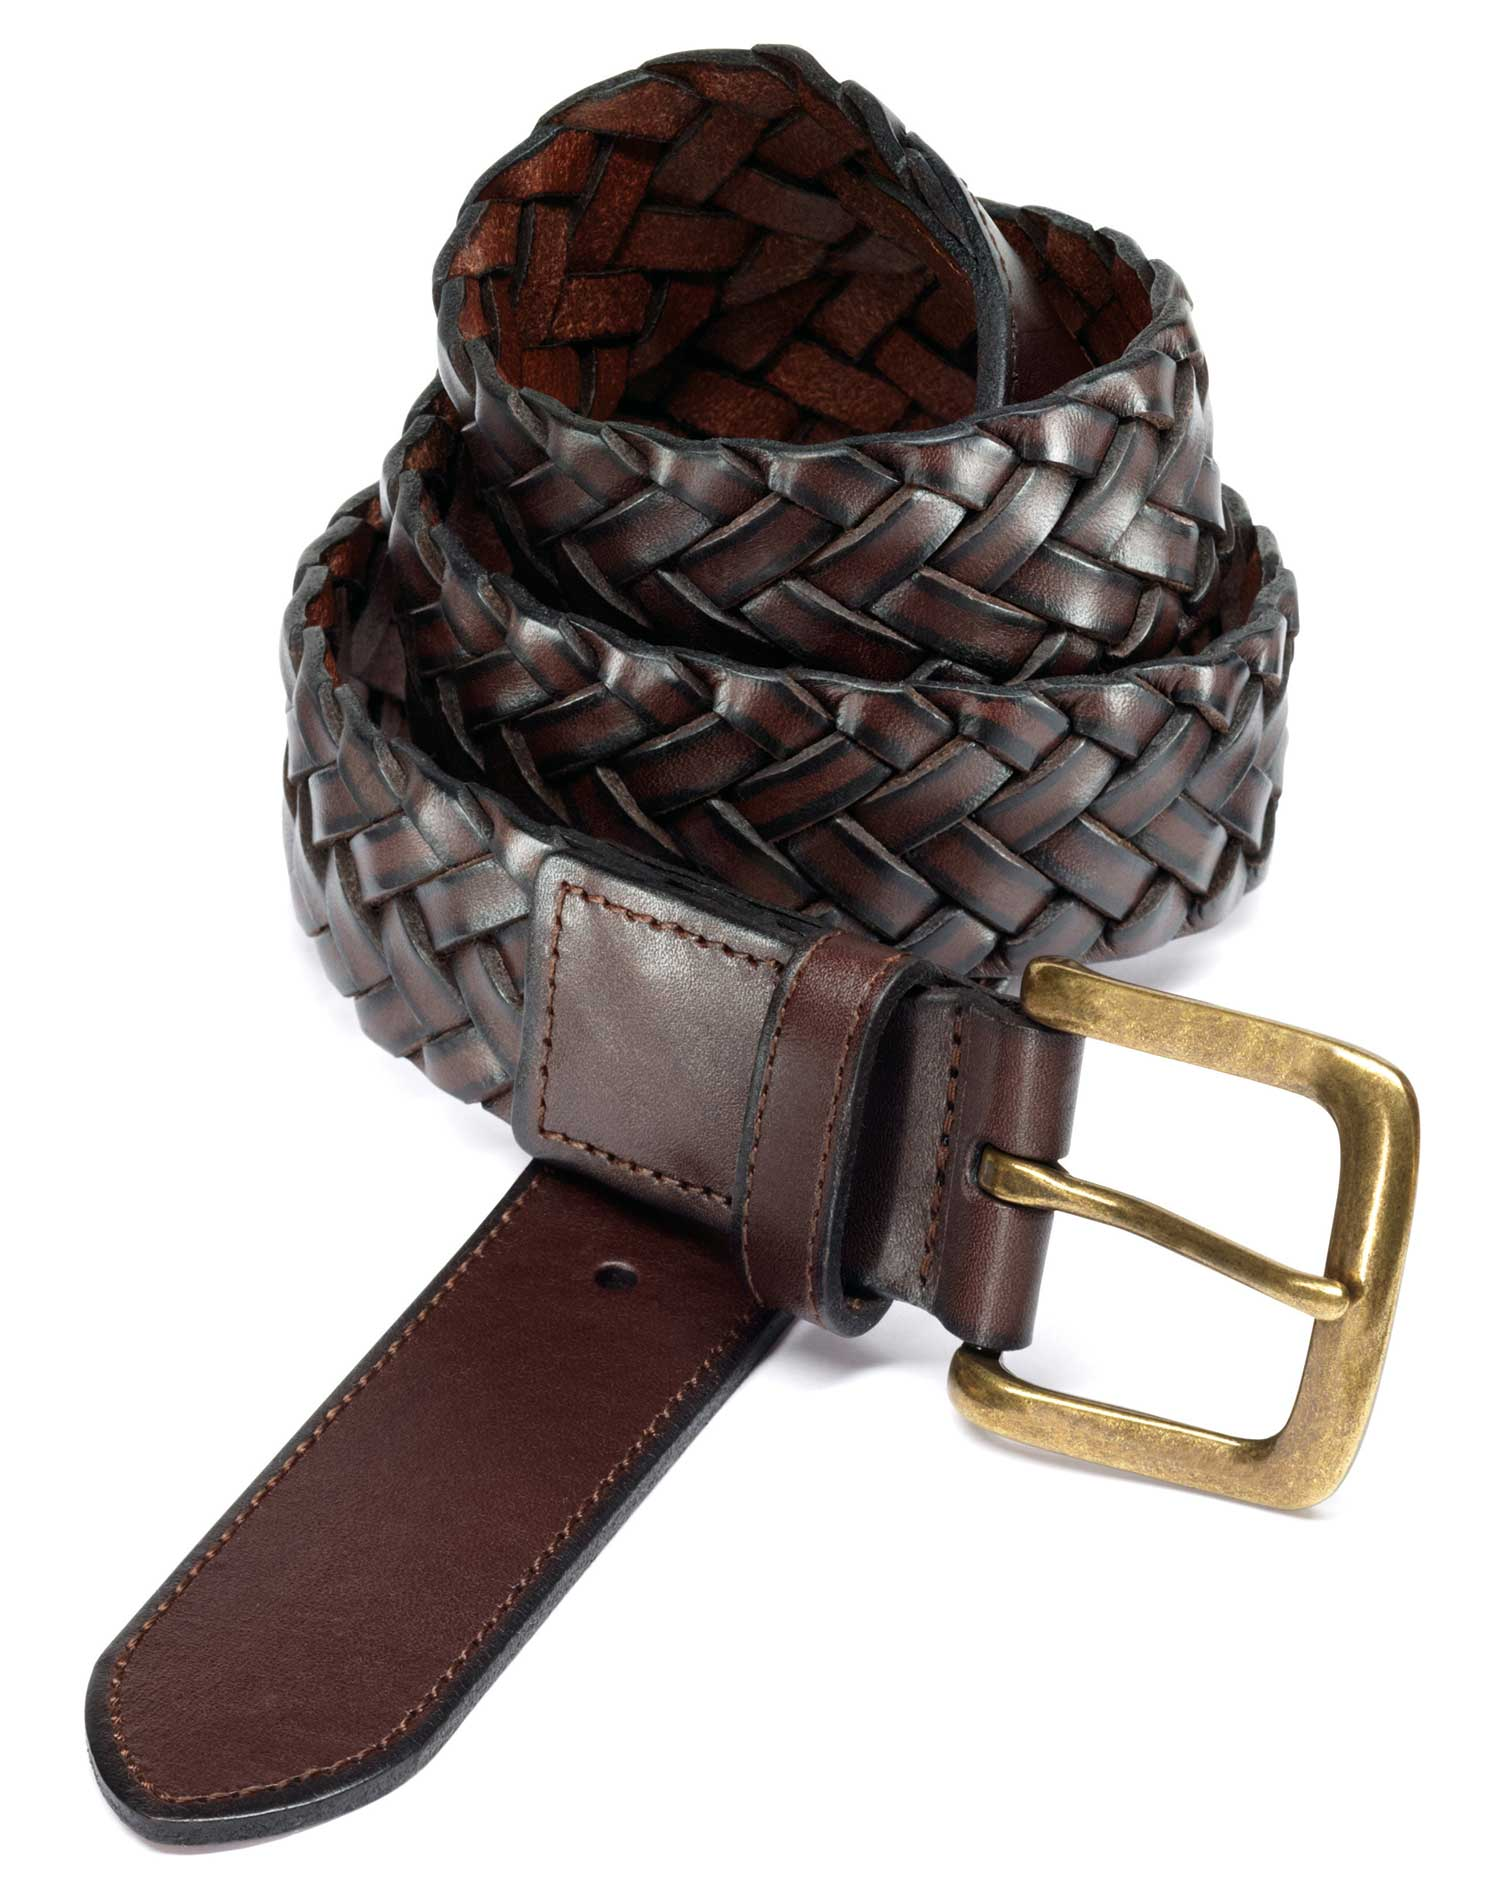 Brown Plait Belt Size 38-40 by Charles Tyrwhitt